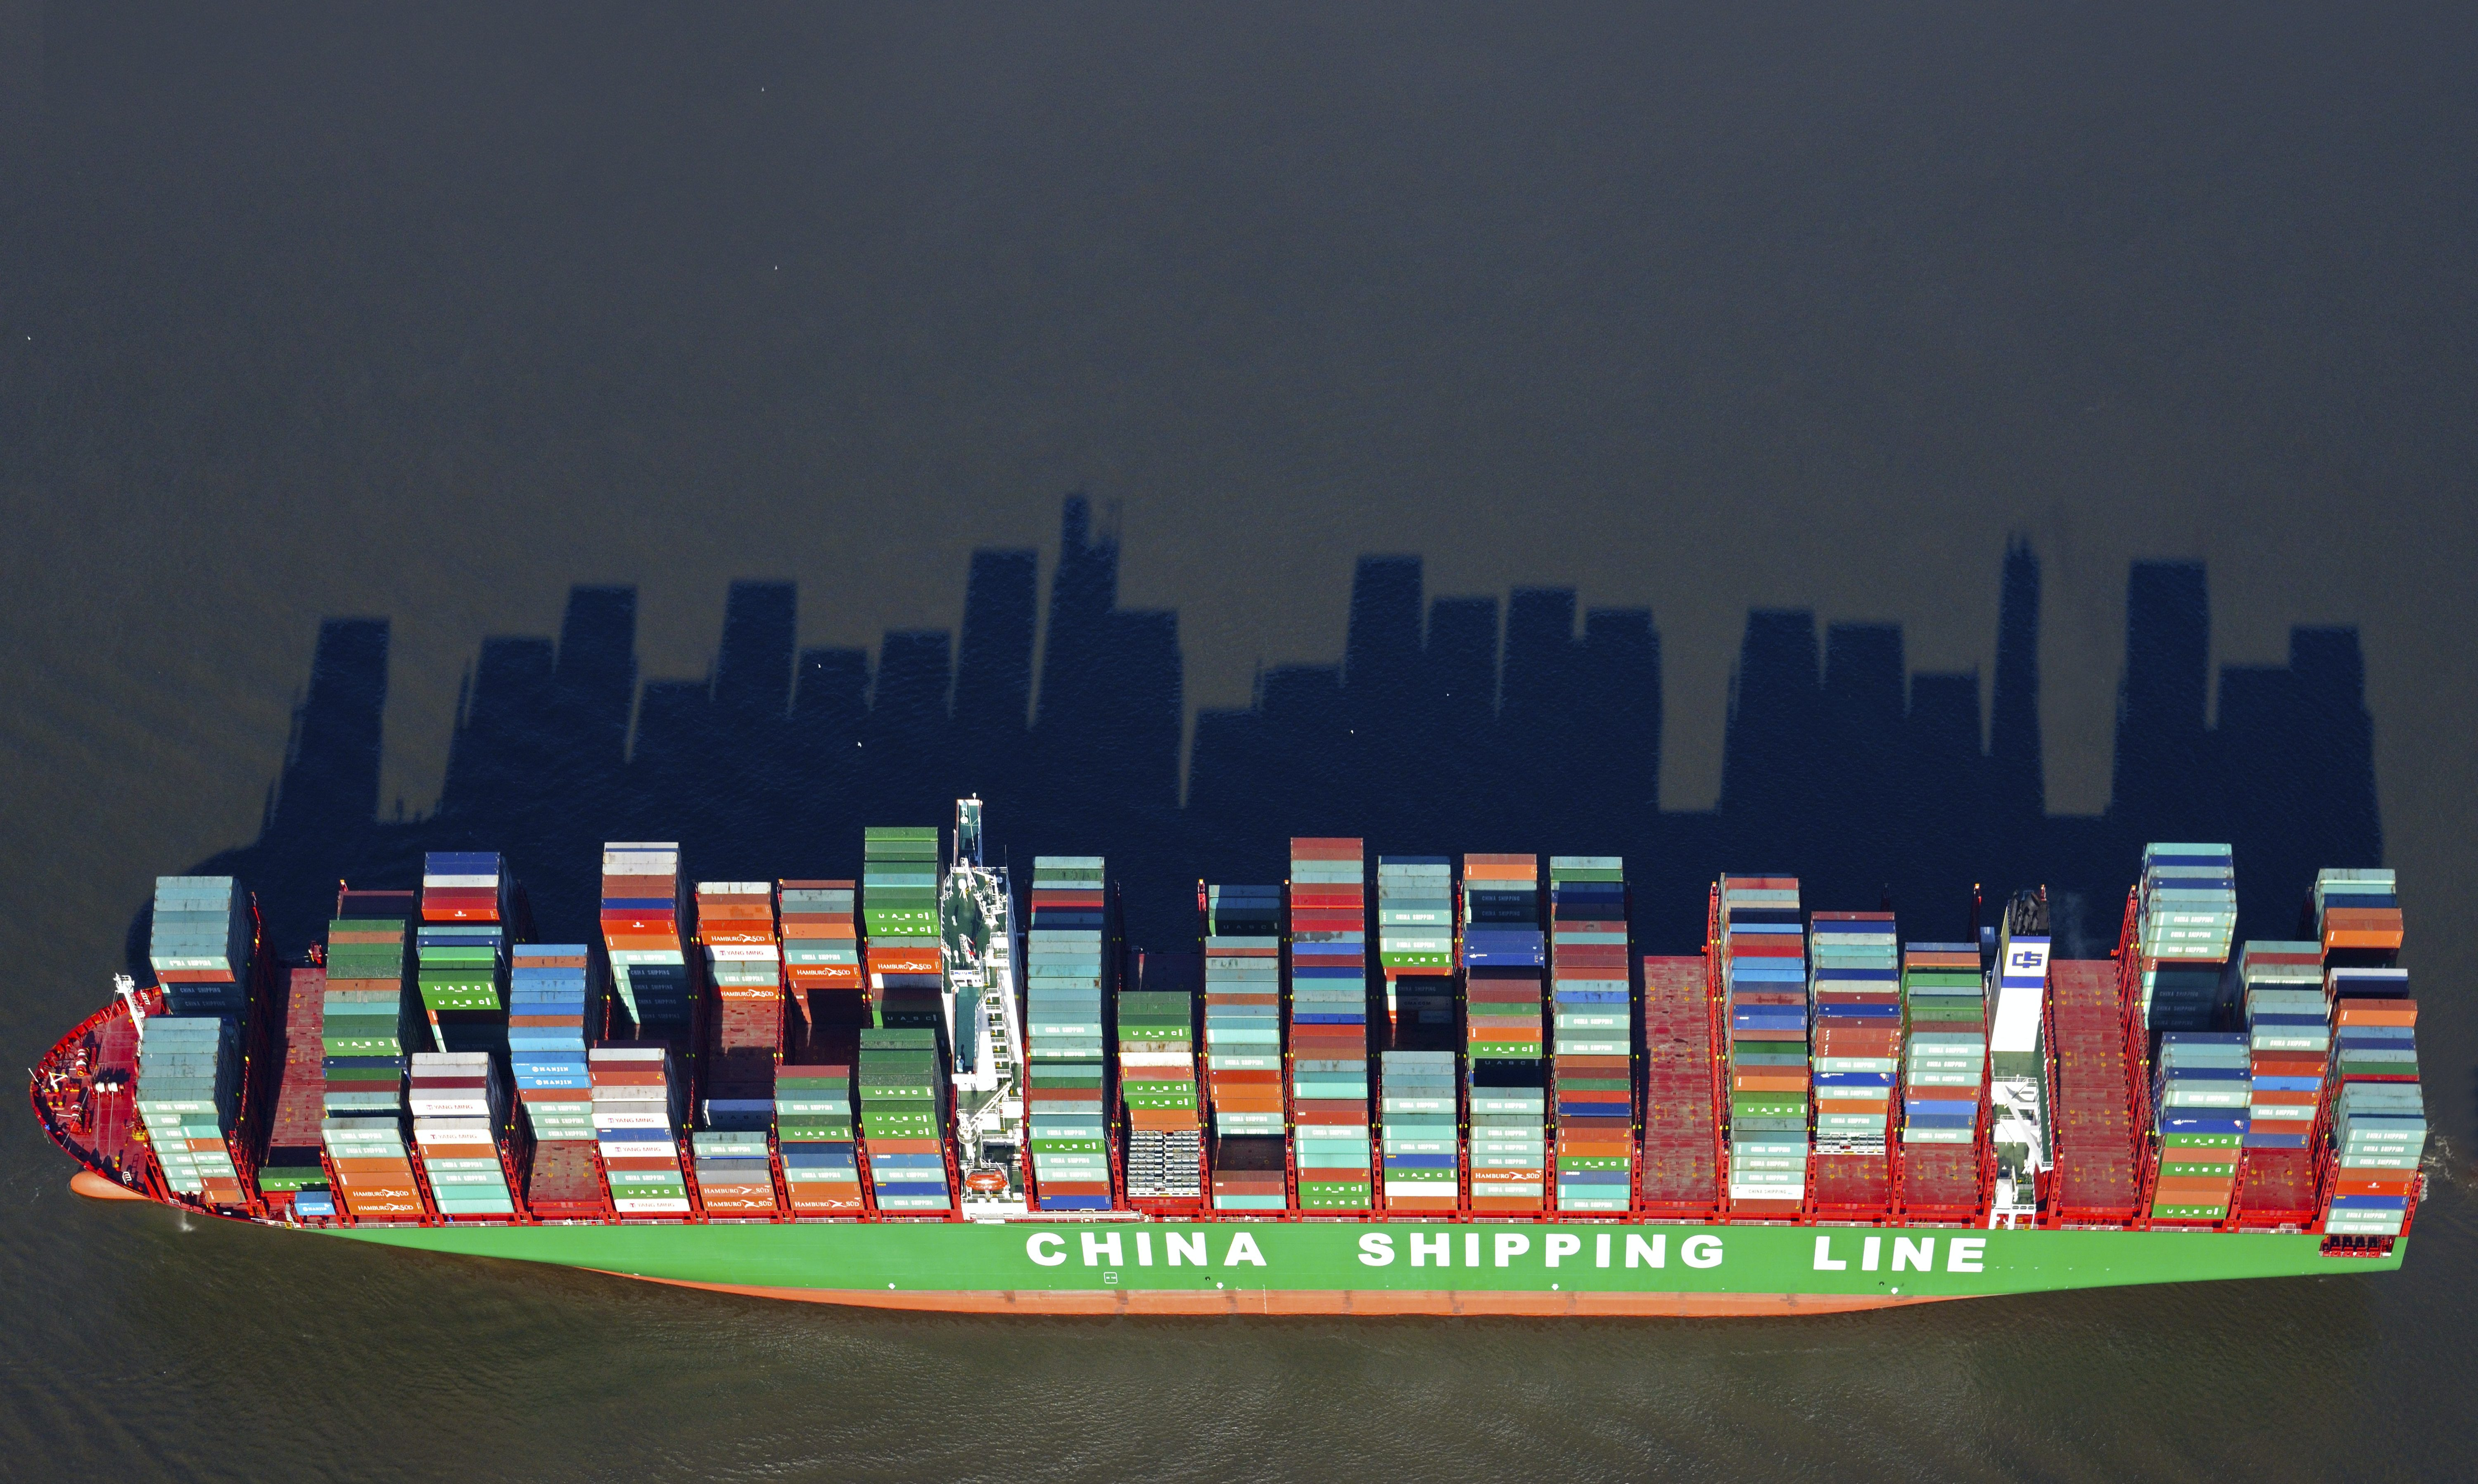 Stacked container casting long shadows, China Shipping Line container ship on the river Elbe, Hamburg, GermanyVARIOUS